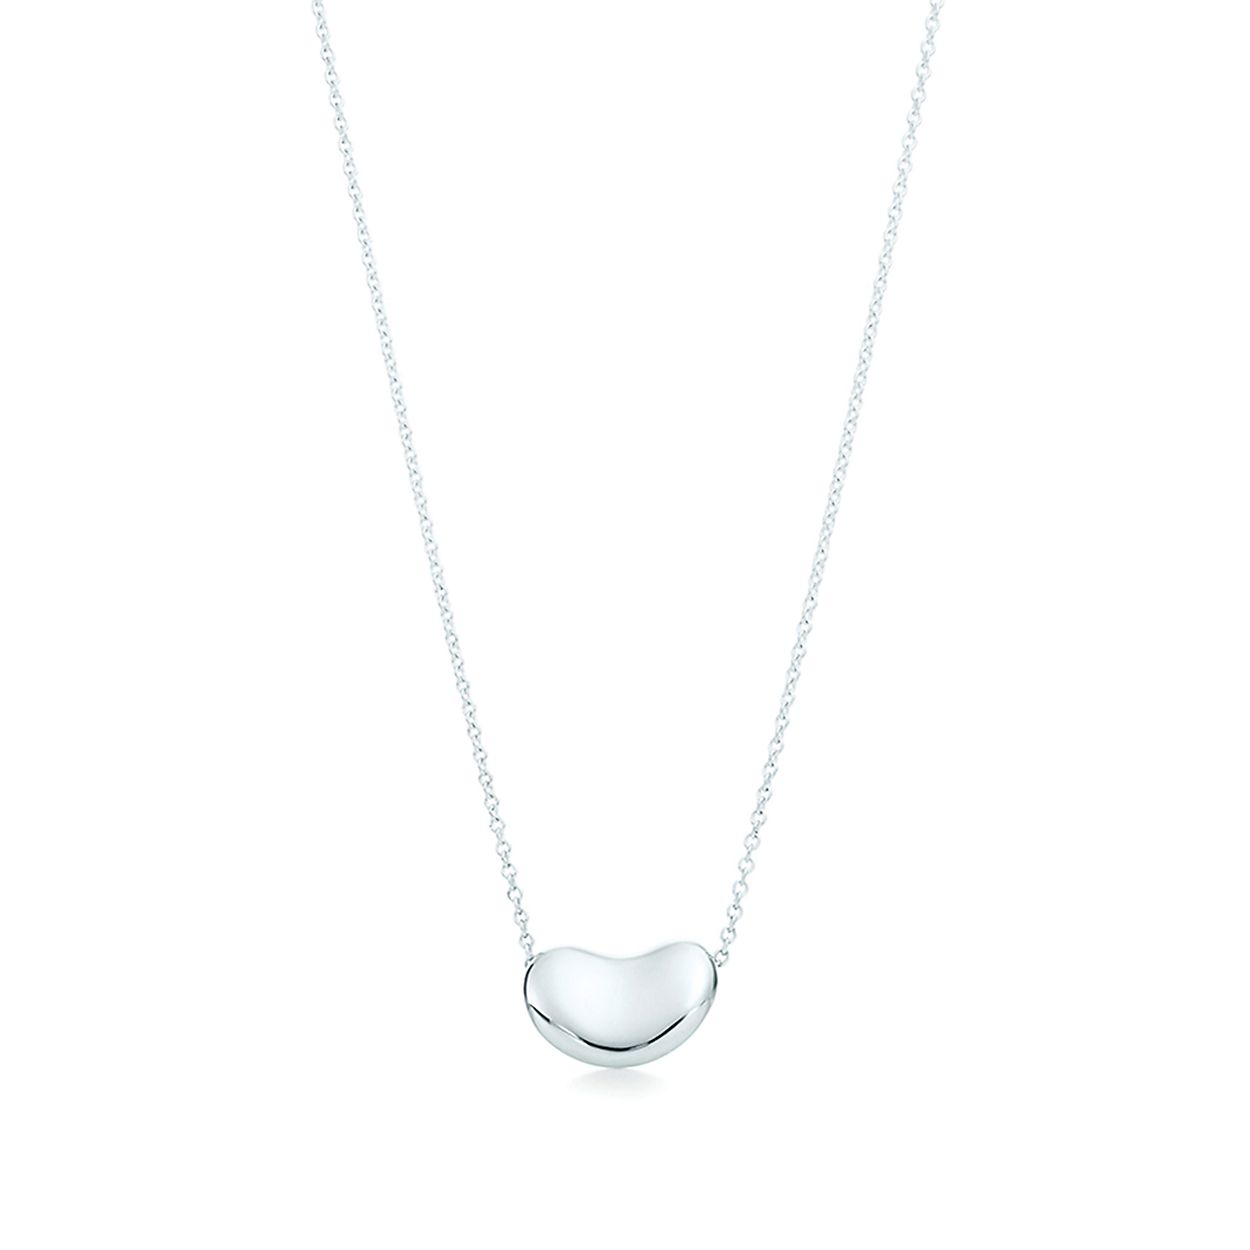 81359a789 Elsa Peretti® Bean Design® pendant in sterling silver. | Tiffany & Co.